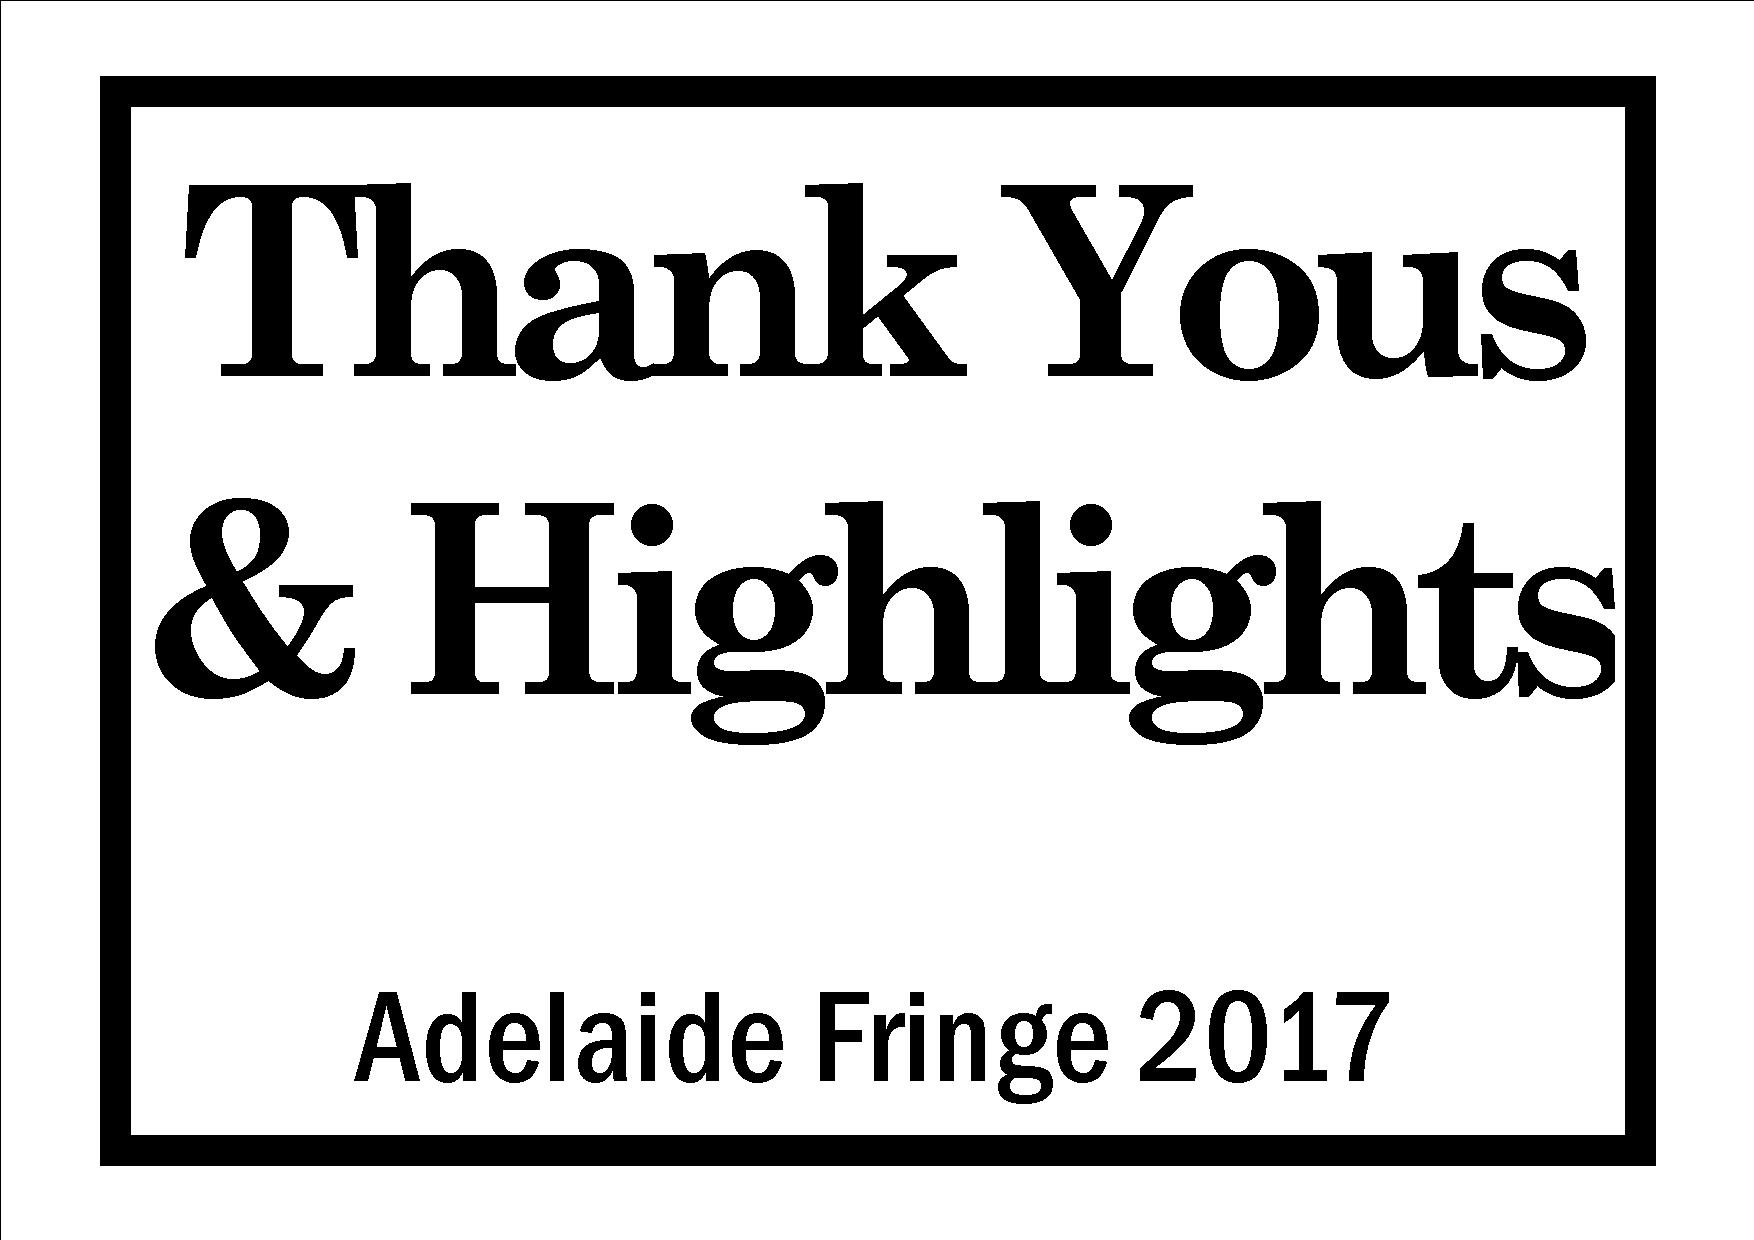 Thank Yous & Highlights - Adelaide Fringe 2017